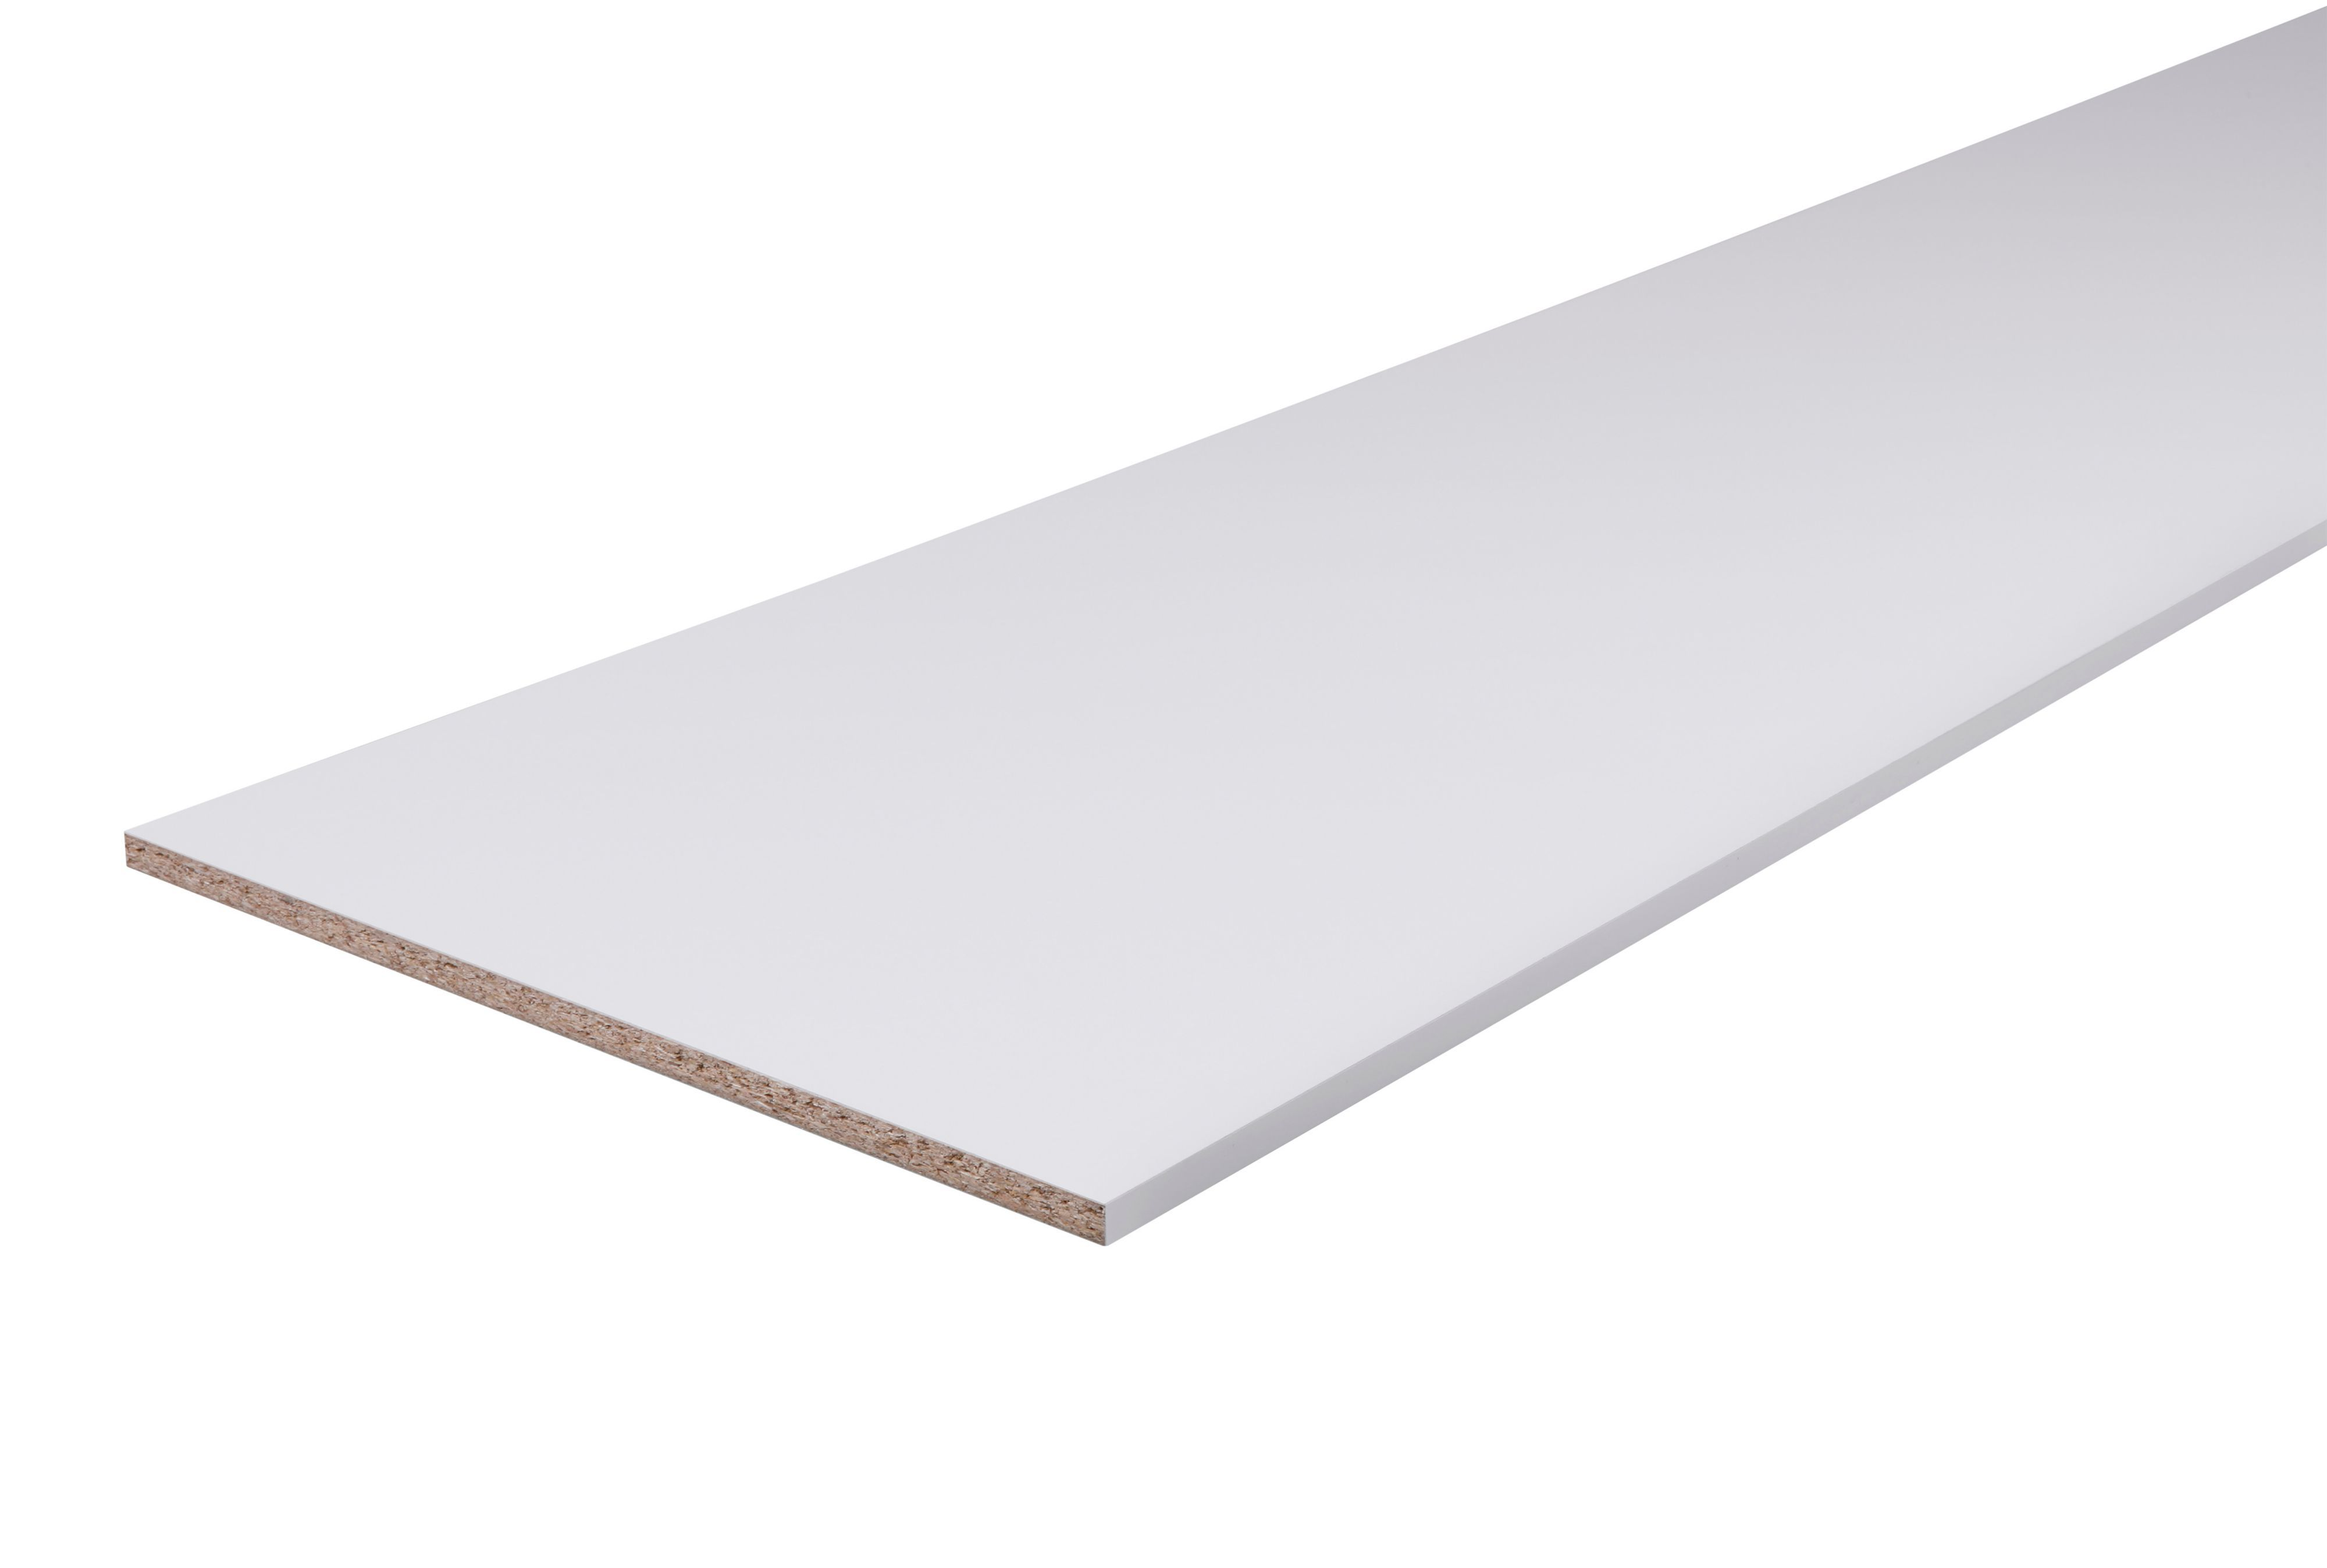 Furniture panel White (L)2500mm (W)600mm (T)18mm